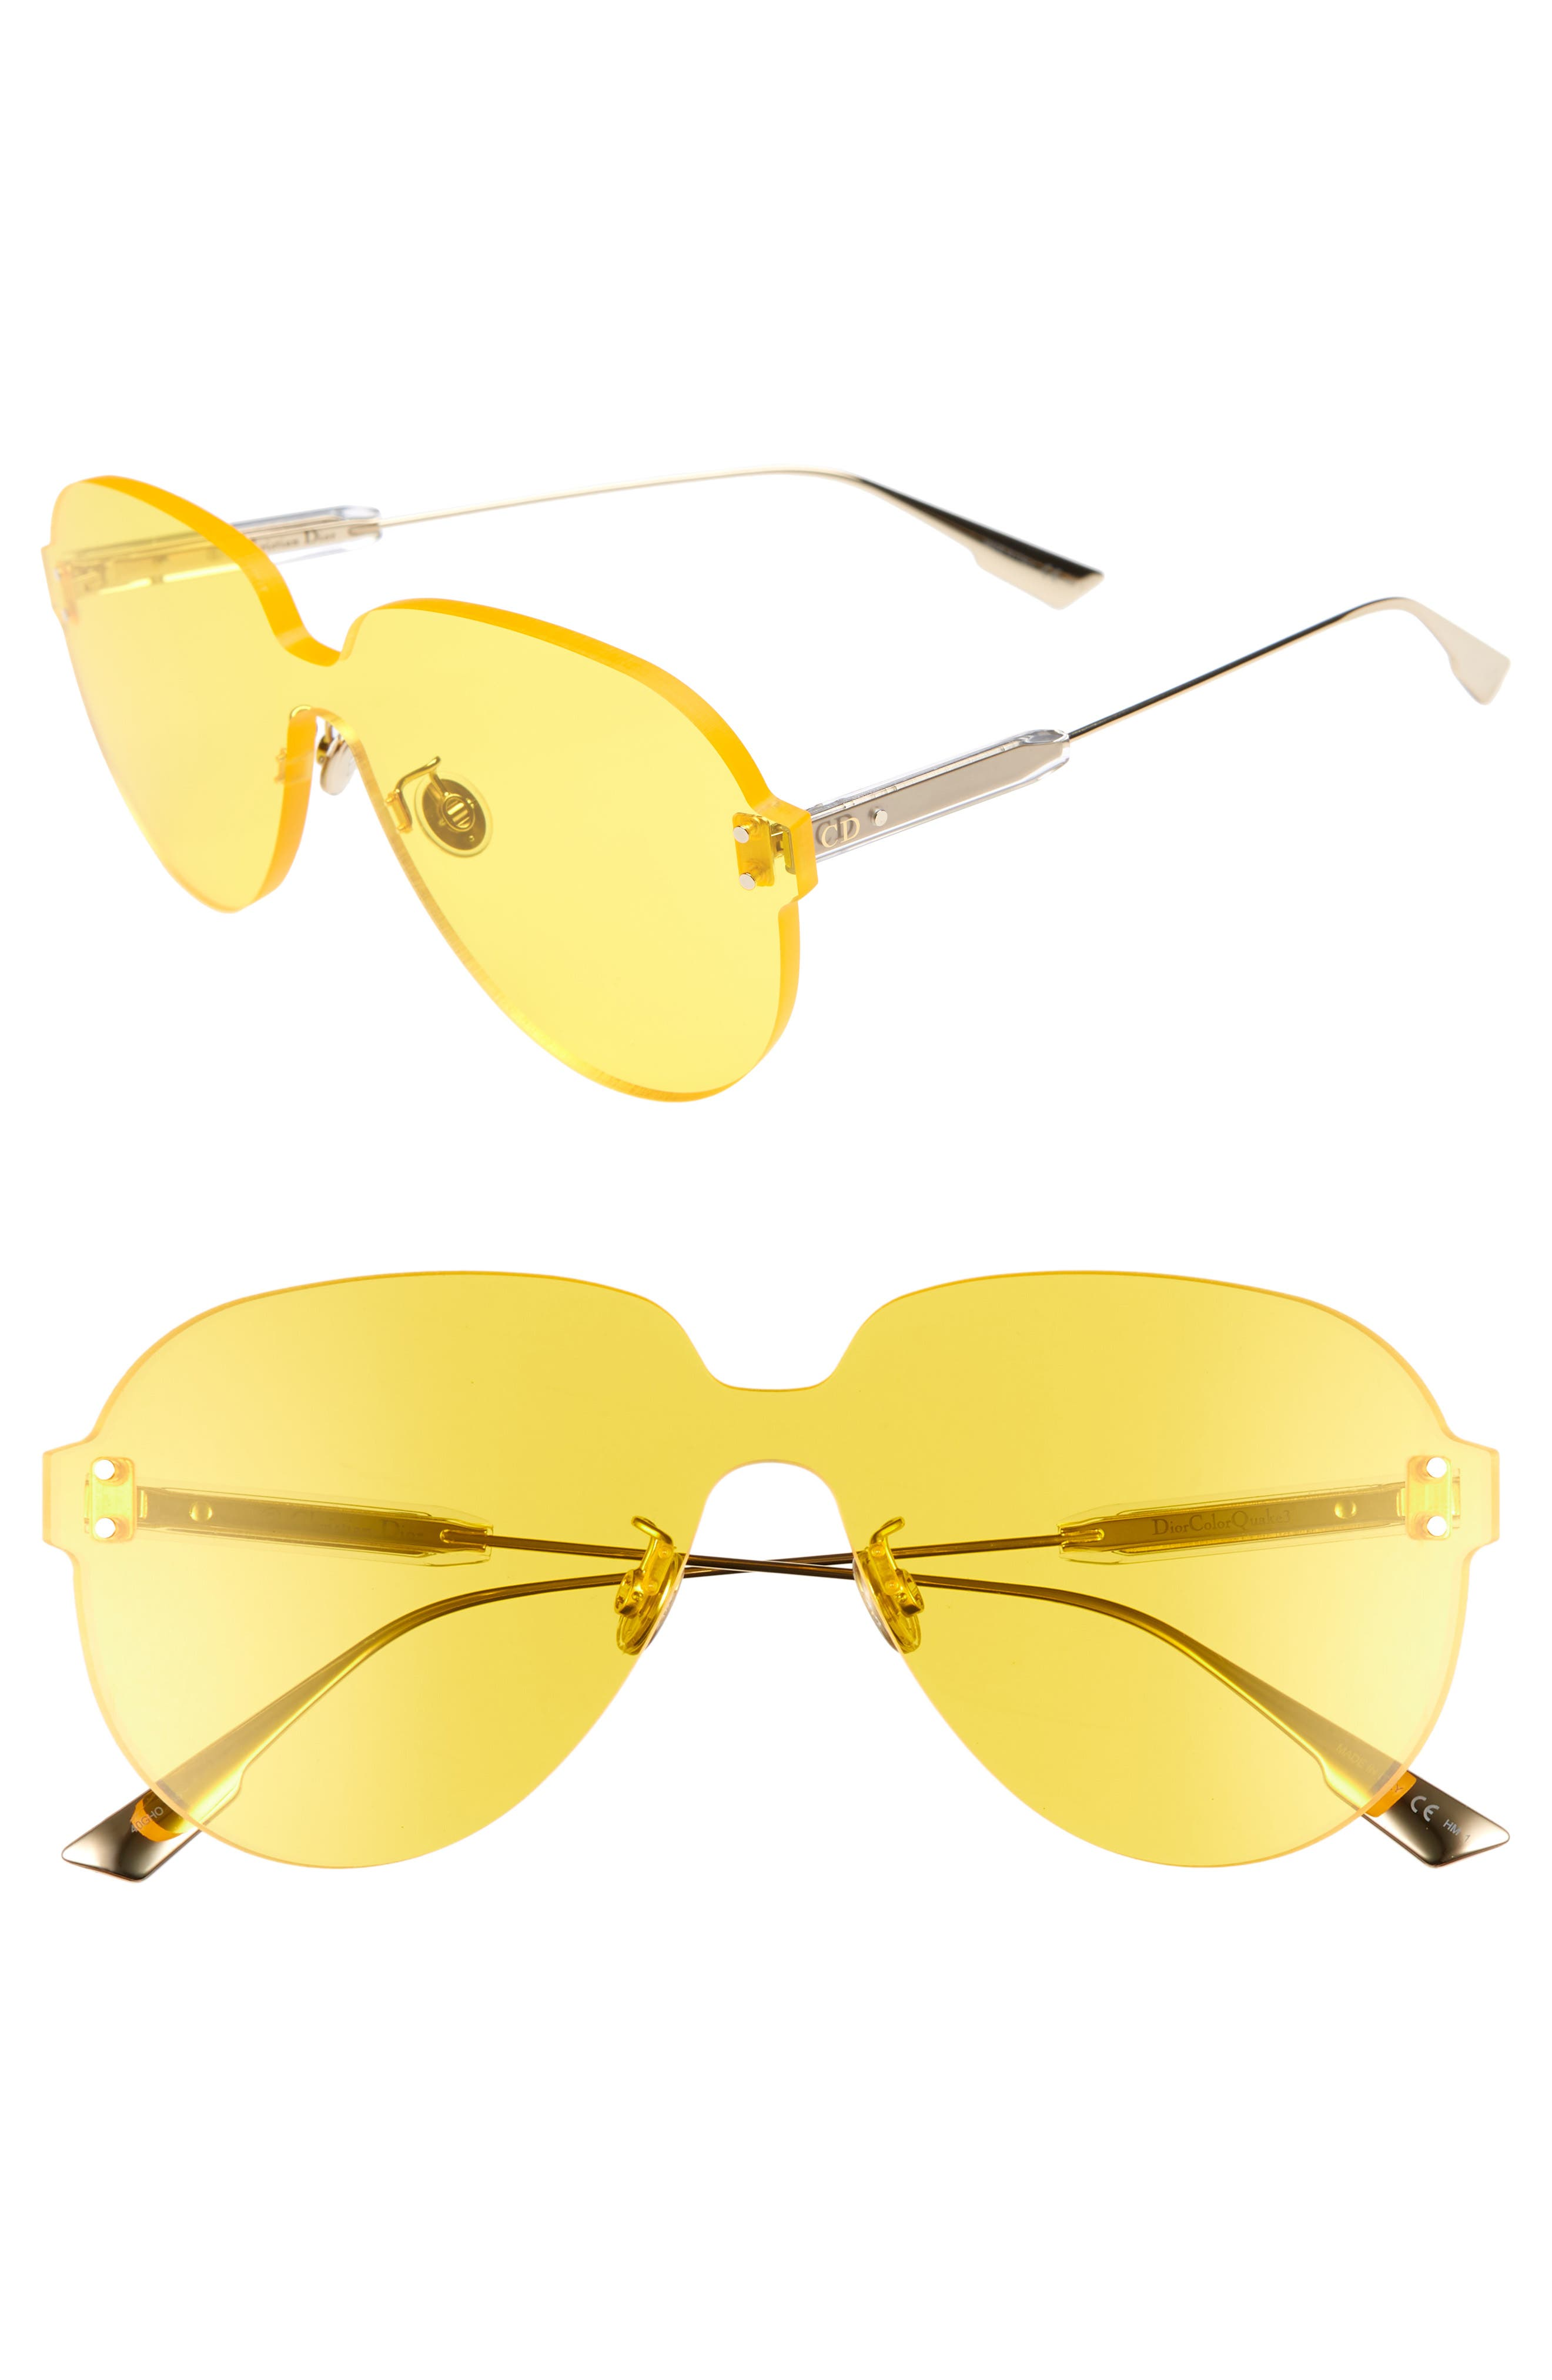 Christian Dior Quake3 14m Rimless Pilot Shield Sunglasses - Yellow